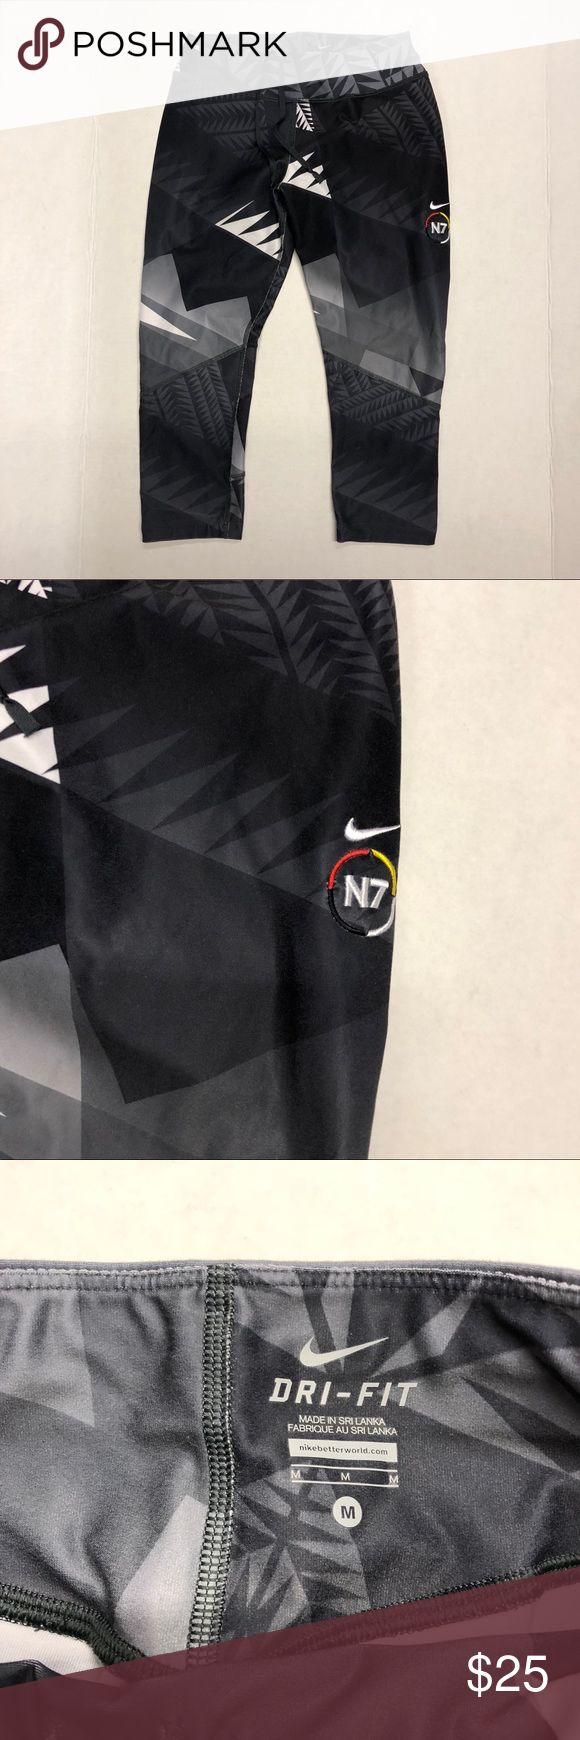 NIKE DRI FIT N7 LEGGINGS SIZE: M 100% Authentic Pre-Loved NIKE N7 Grey/White abstract print | Gently used worn in excellent condition | Size: Medium | Thank you for looking at my closet and please contact me with any inquiries. Have a awesome day! Nike Pants Leggings